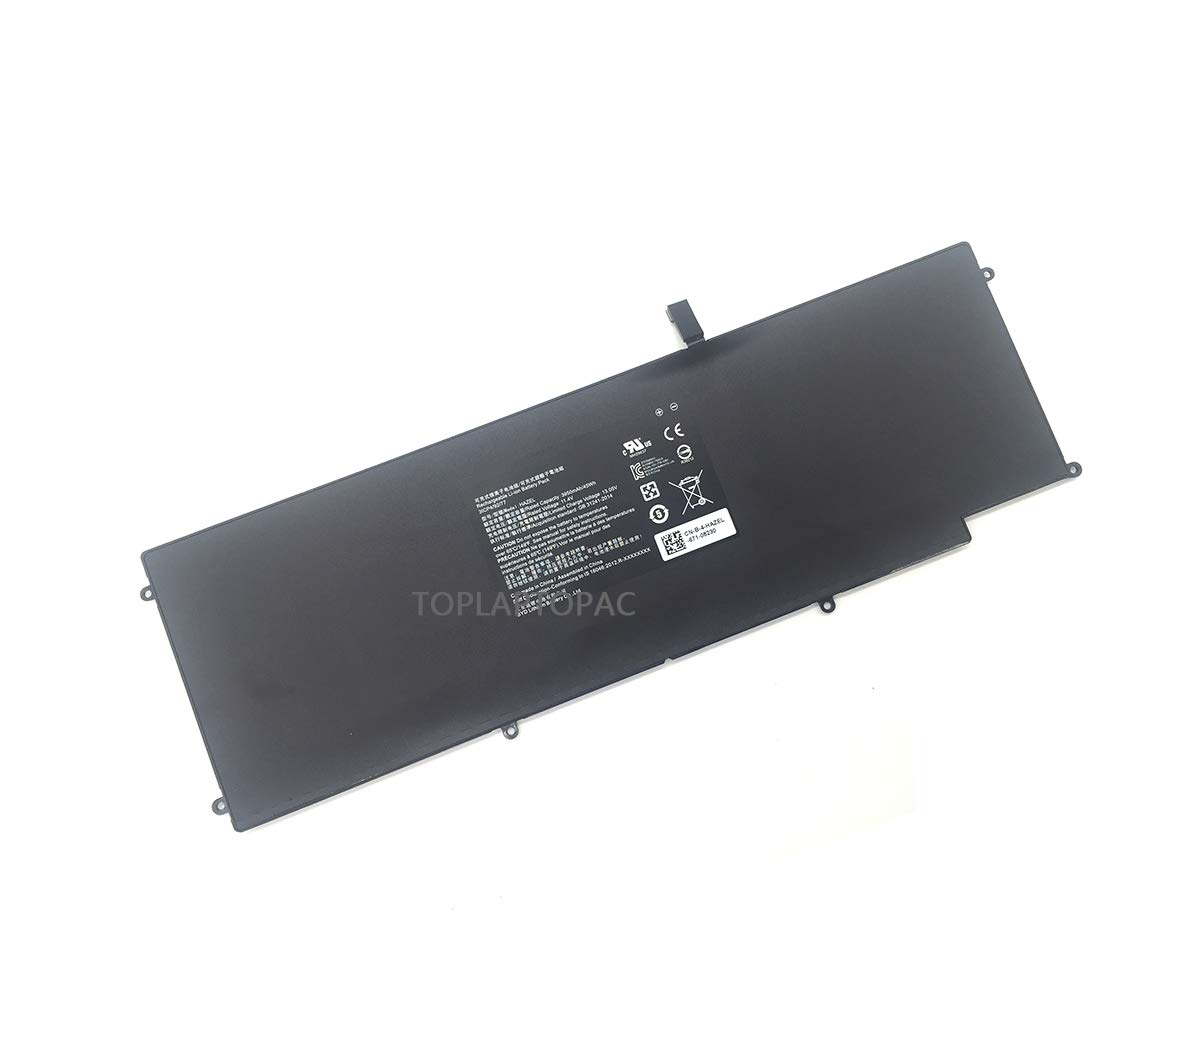 RC30-0196 Laptop Battery Compatible with Razer Blade Stealth RZ09-01962E52 RZ09-01962E12 Series Notebook 11.55V 45Wh 3950mAh